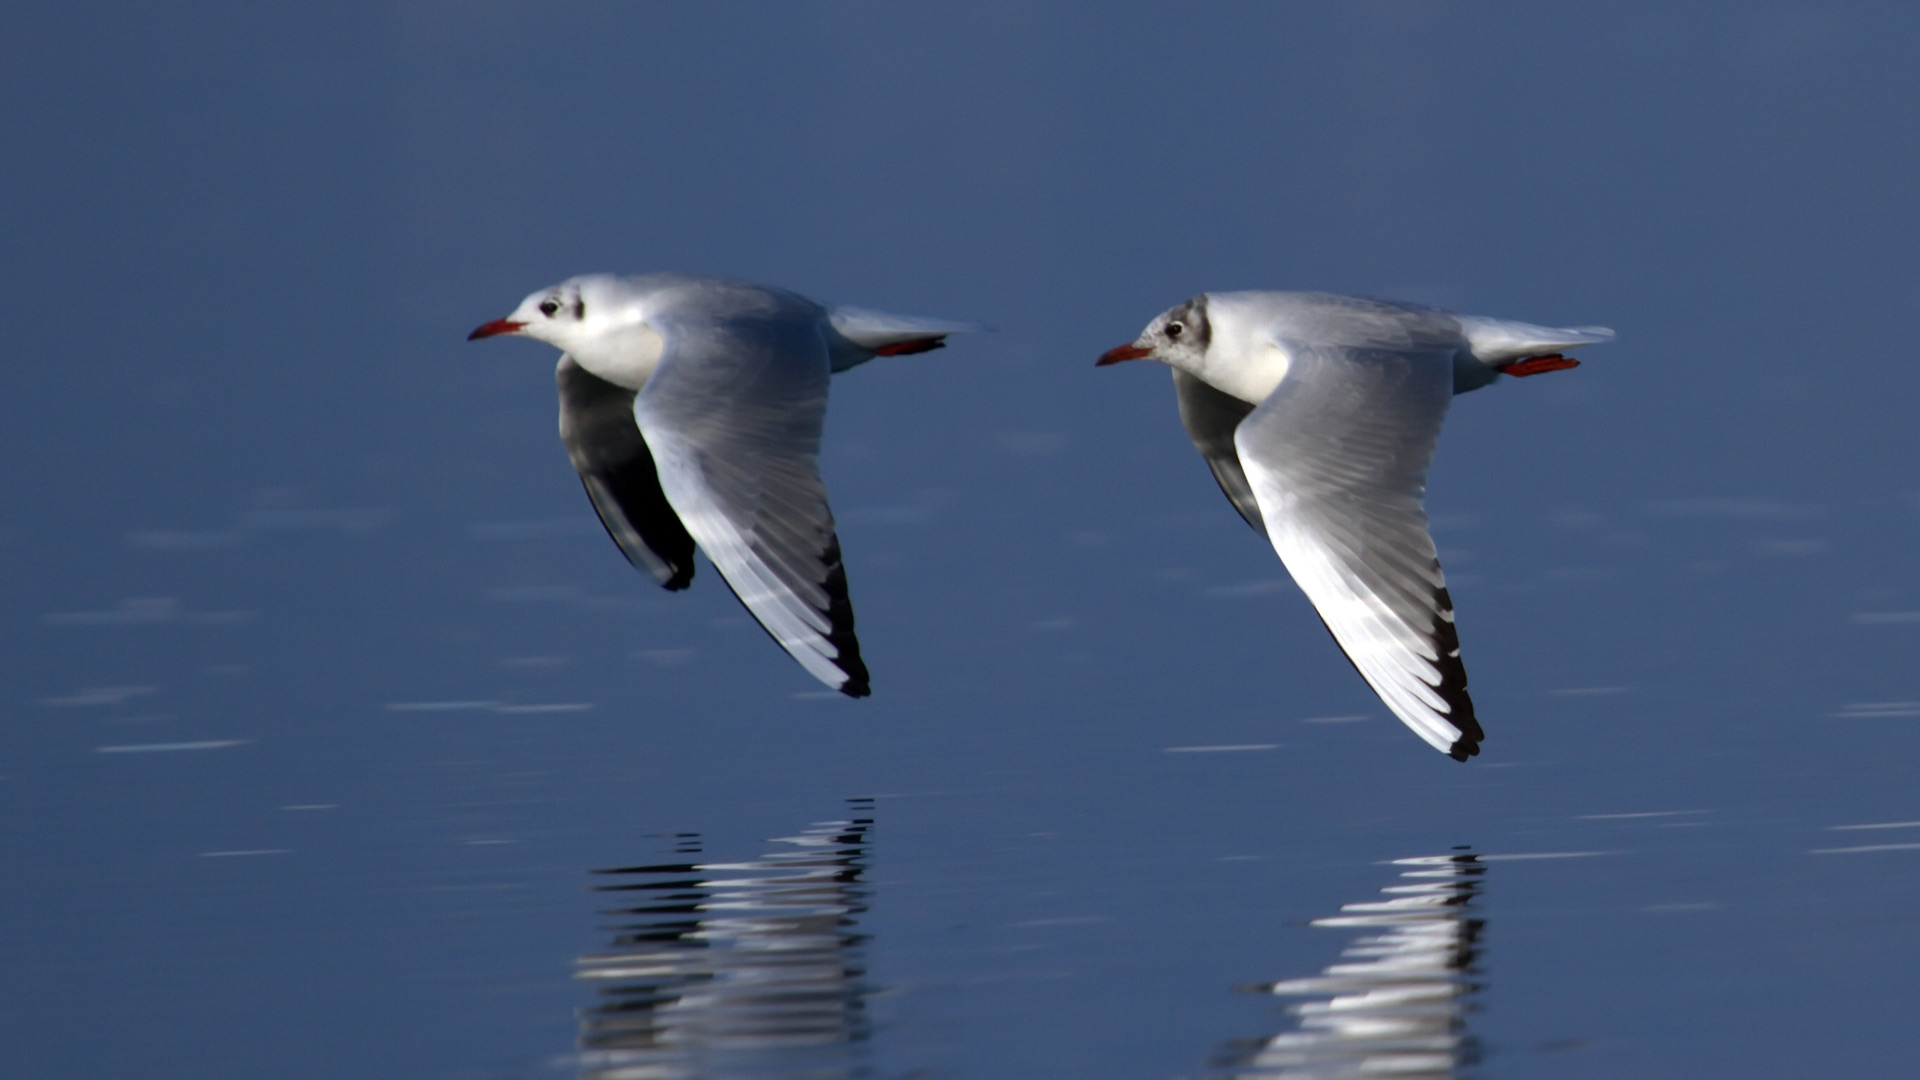 Two black-headed gulls, chroicocephalus ridibundus, flying near waterlake